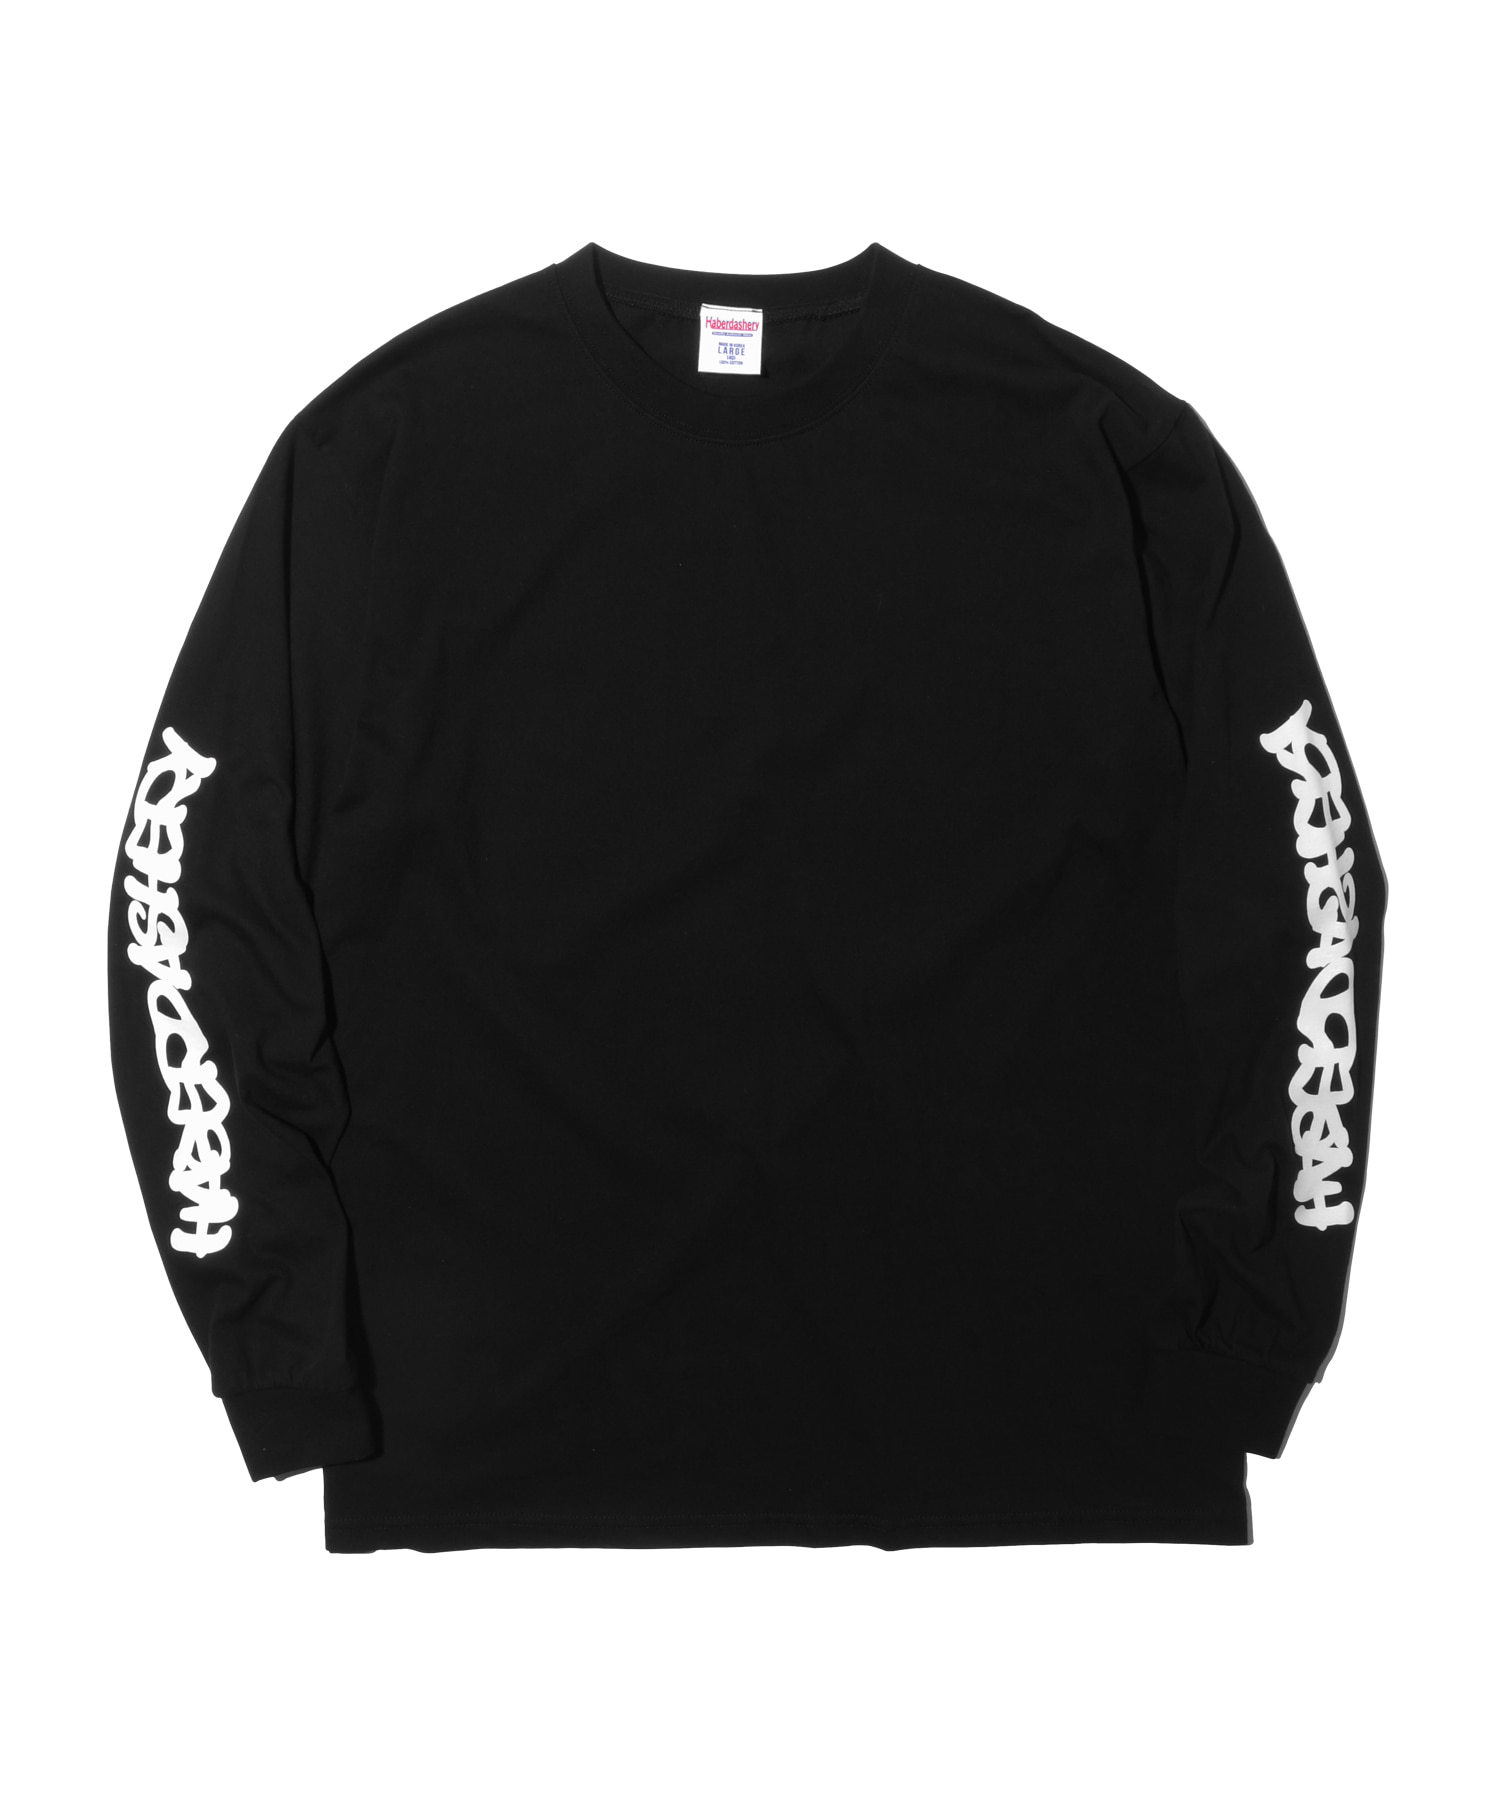 해버대셔리 WAVE LONG SLEEVE_Black